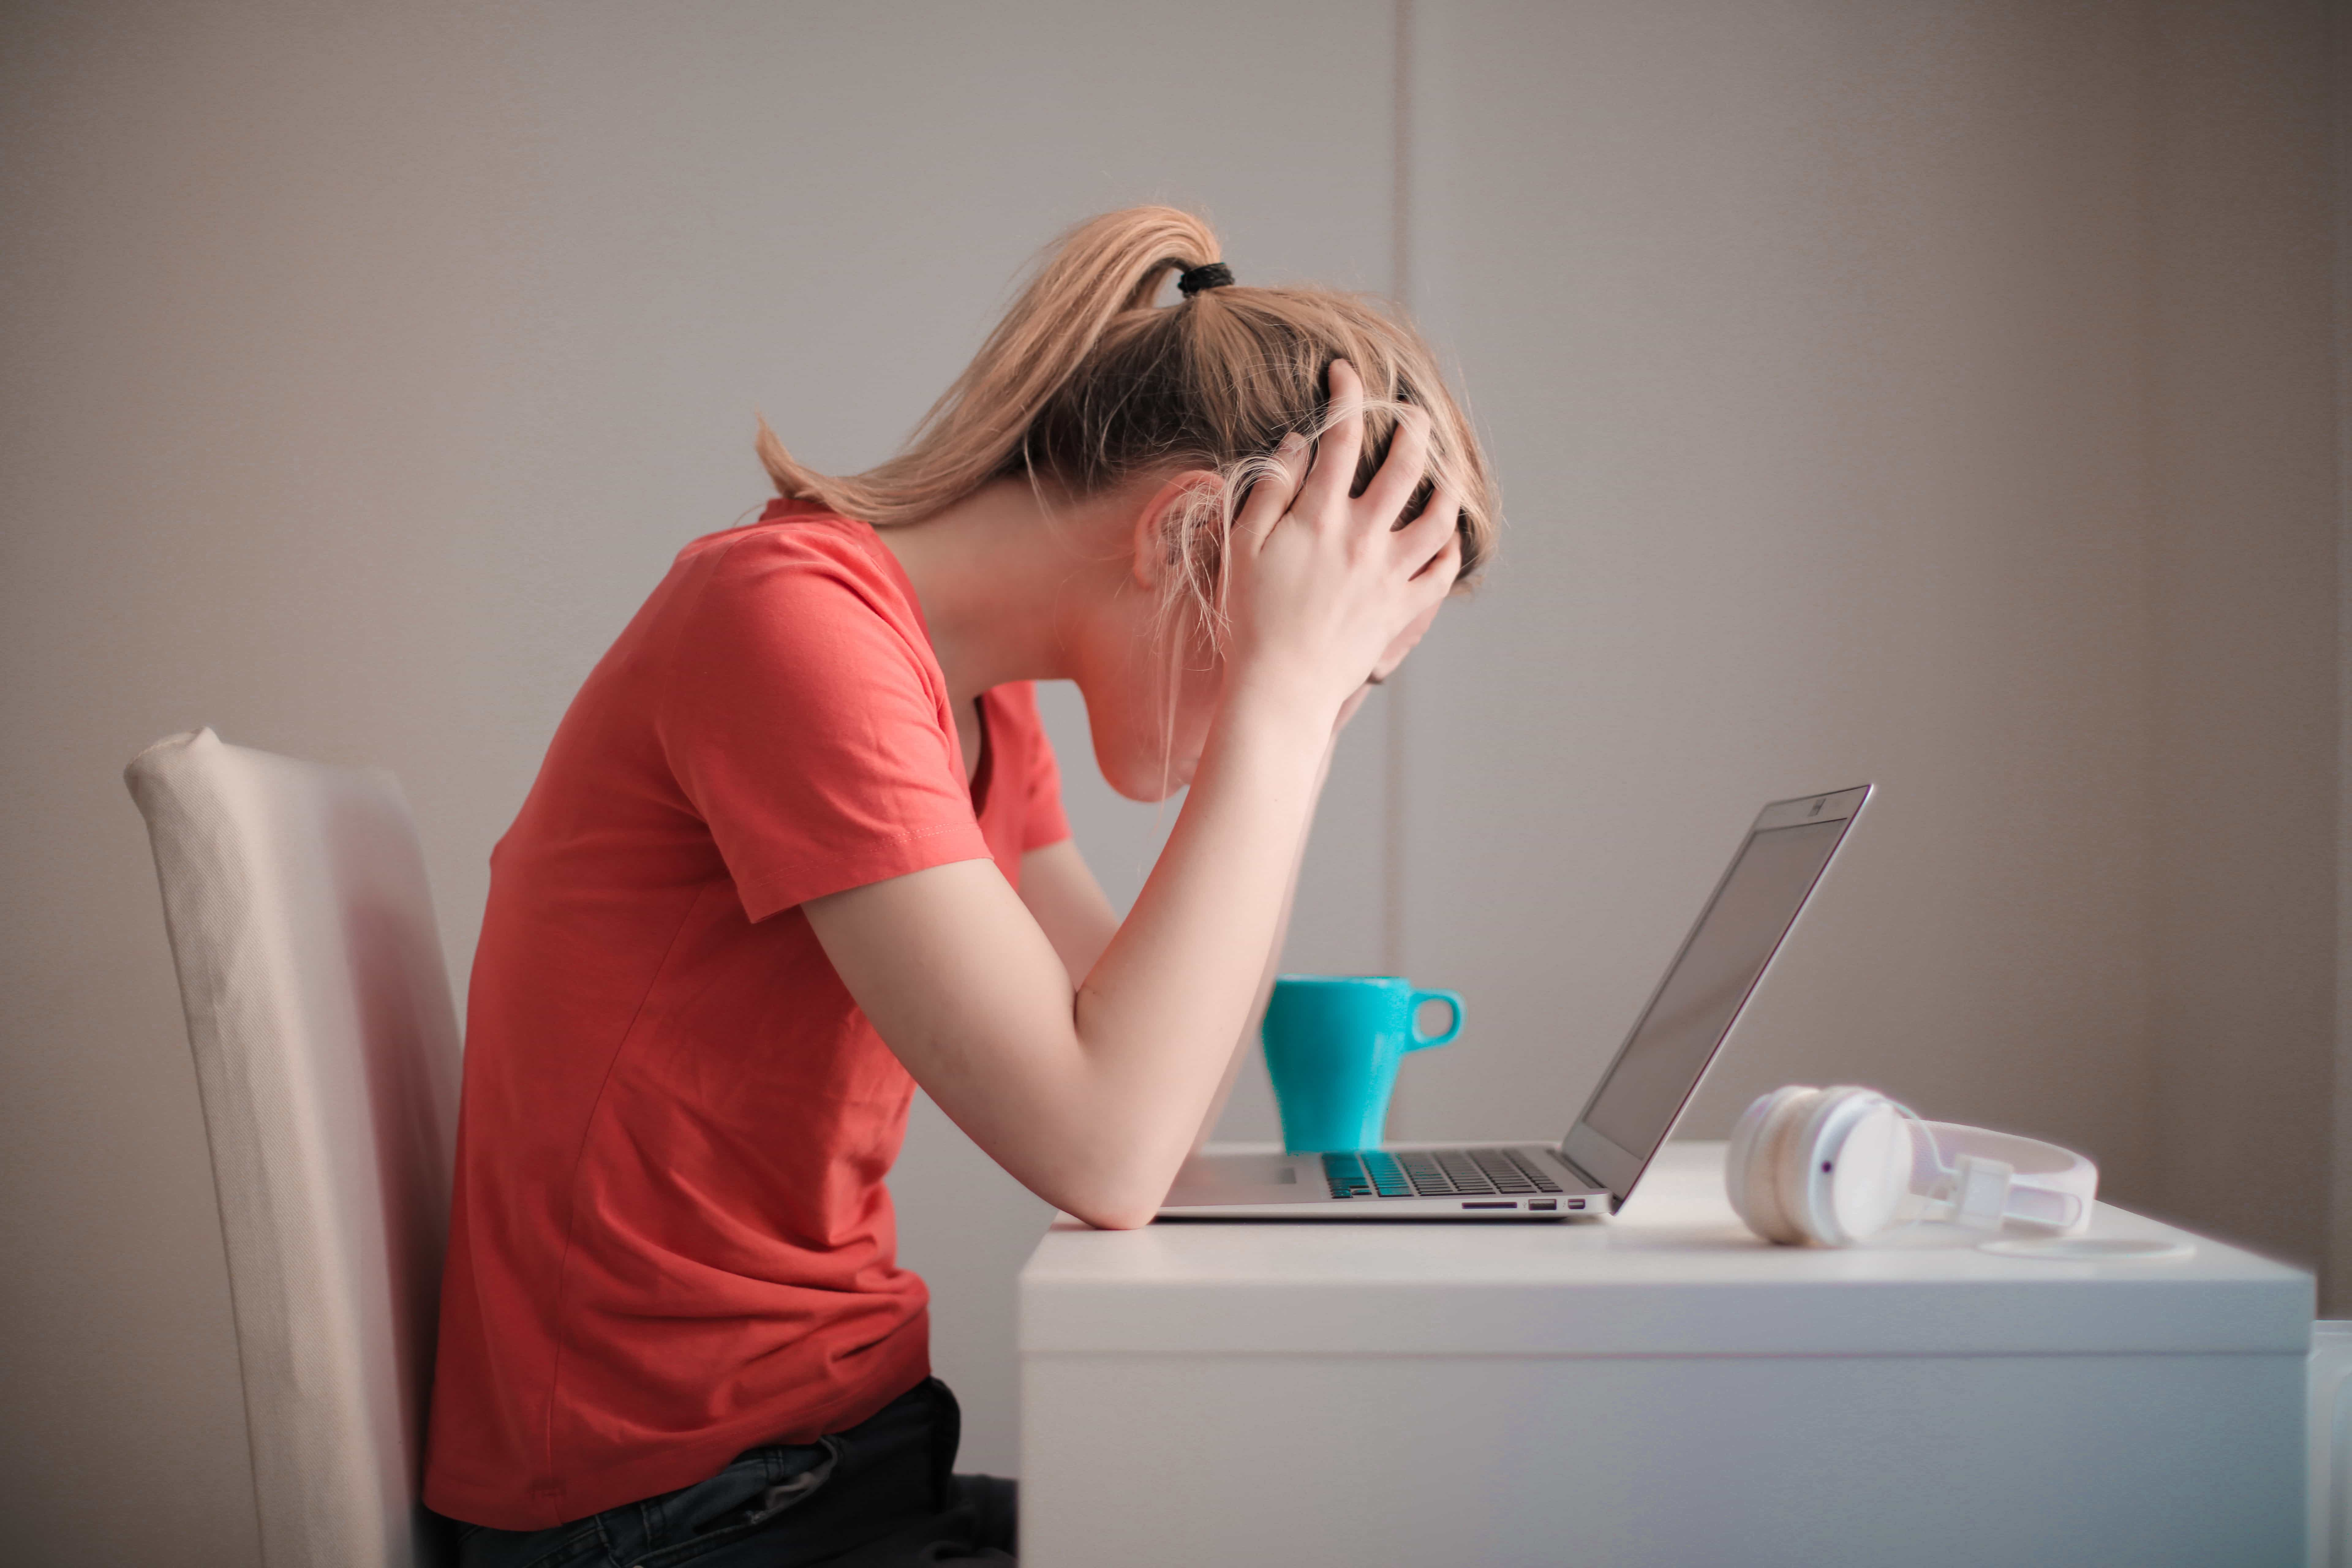 This is an image of a stressed out person sitting at their laptop with their head in their hands